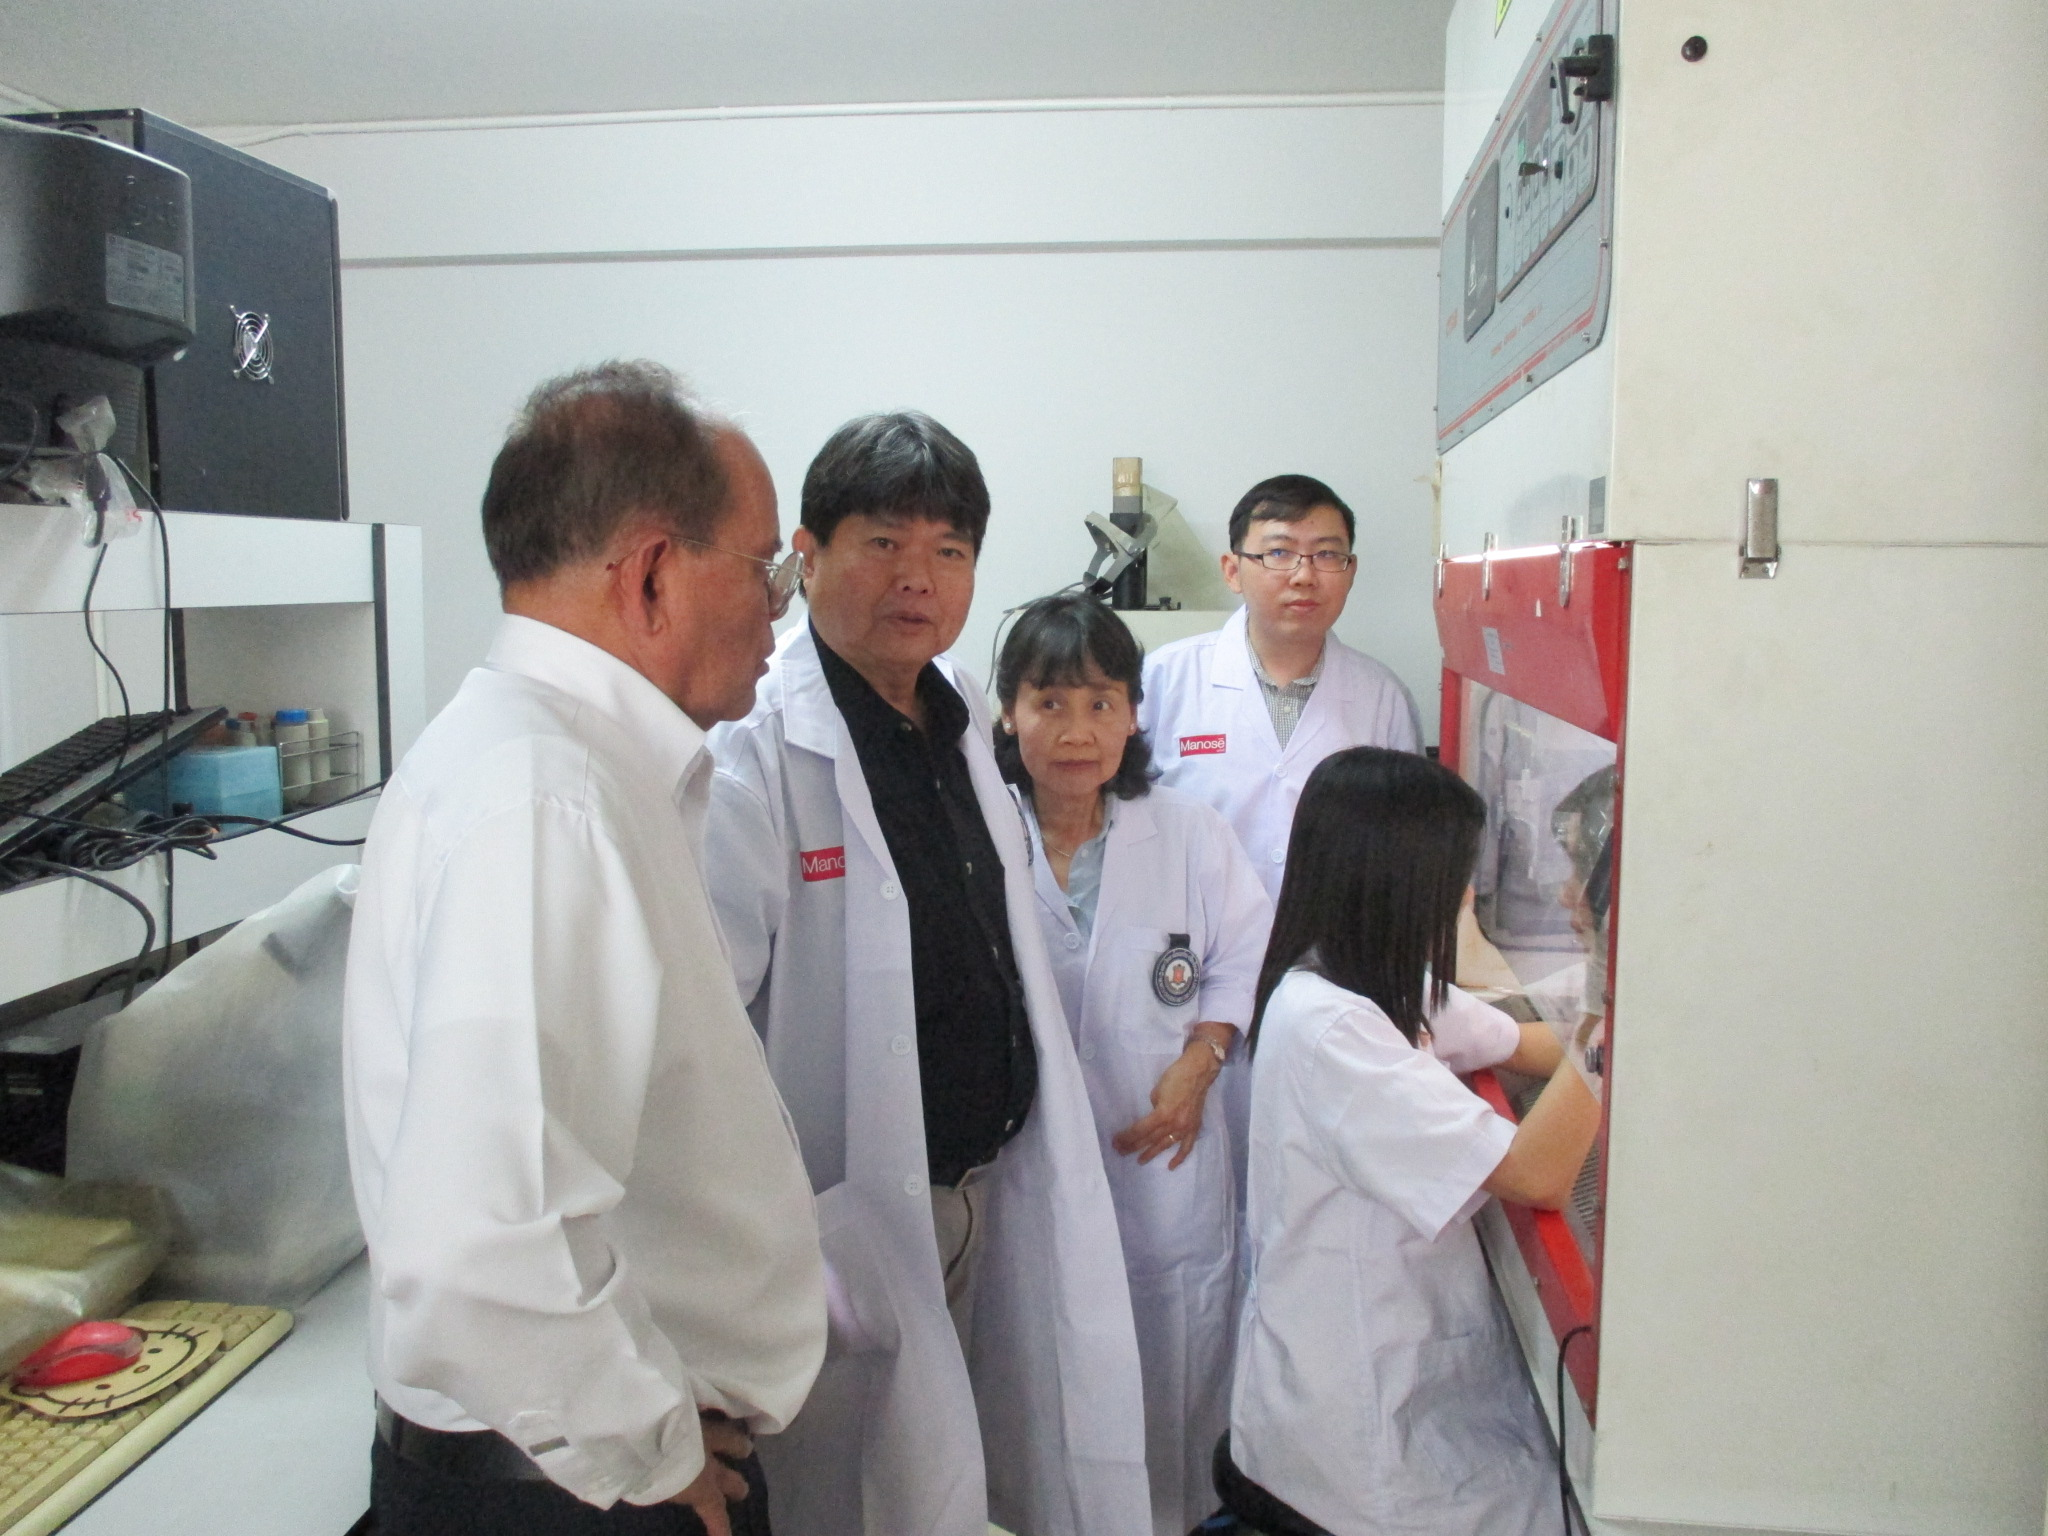 Dr. Vivat Sethachuay, President Assistant of  North-Chiang Mai University and Mr. Jetnarong Khampeng have visited Manose Health and Beauty Research Center